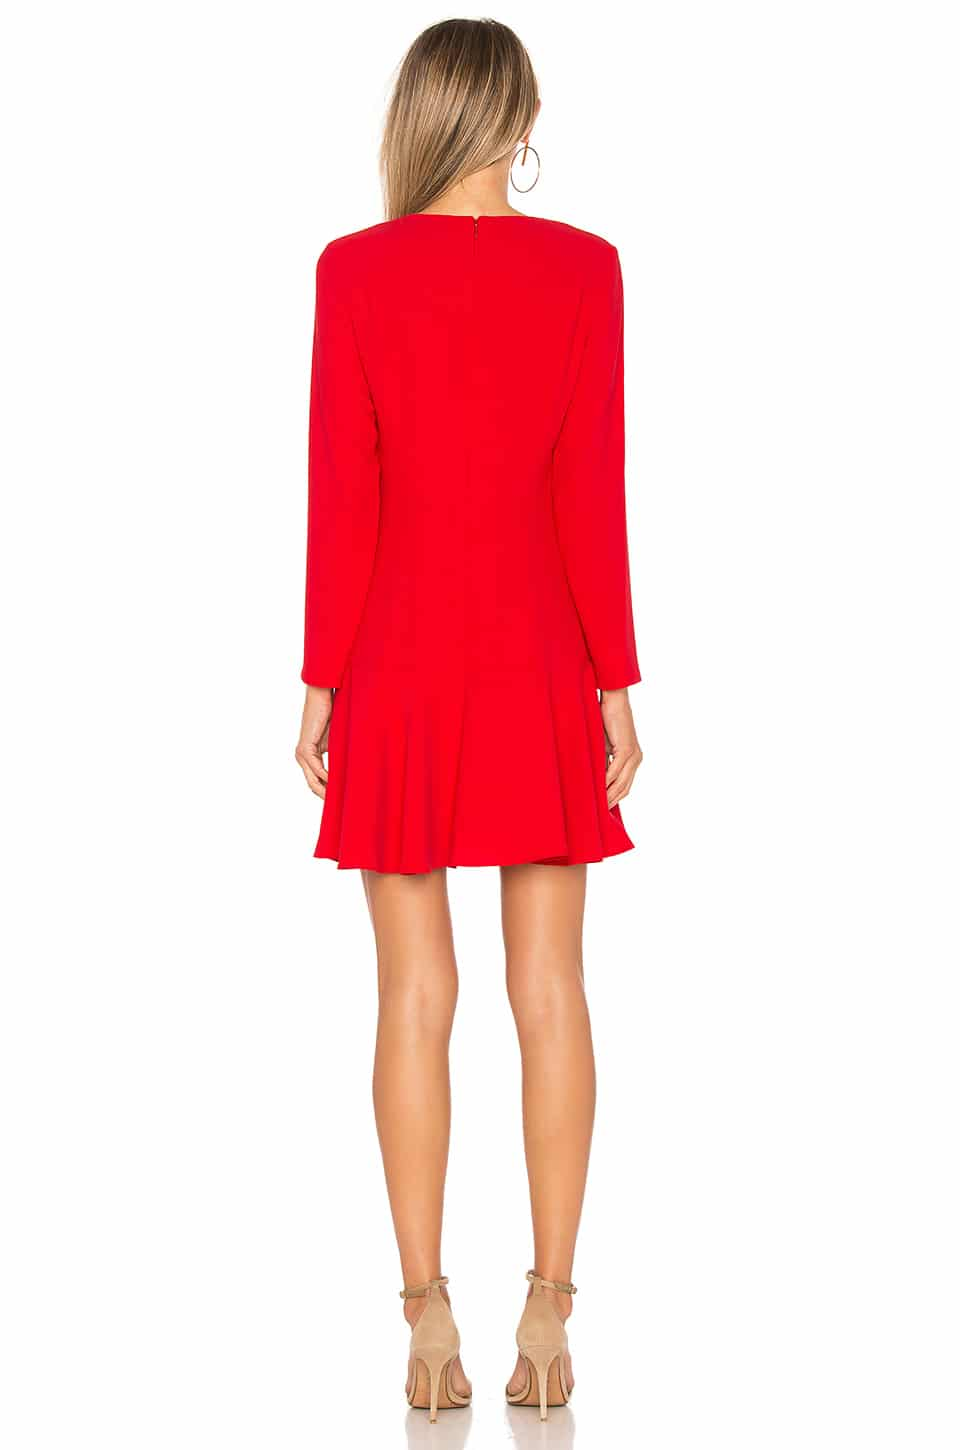 Amanda Uprichard X Revolve Long Sleeve Hudson Mini Lipstick Red Dress We Select Dresses With quick shipping and stand out styles you'll love it too. amanda uprichard x revolve long sleeve